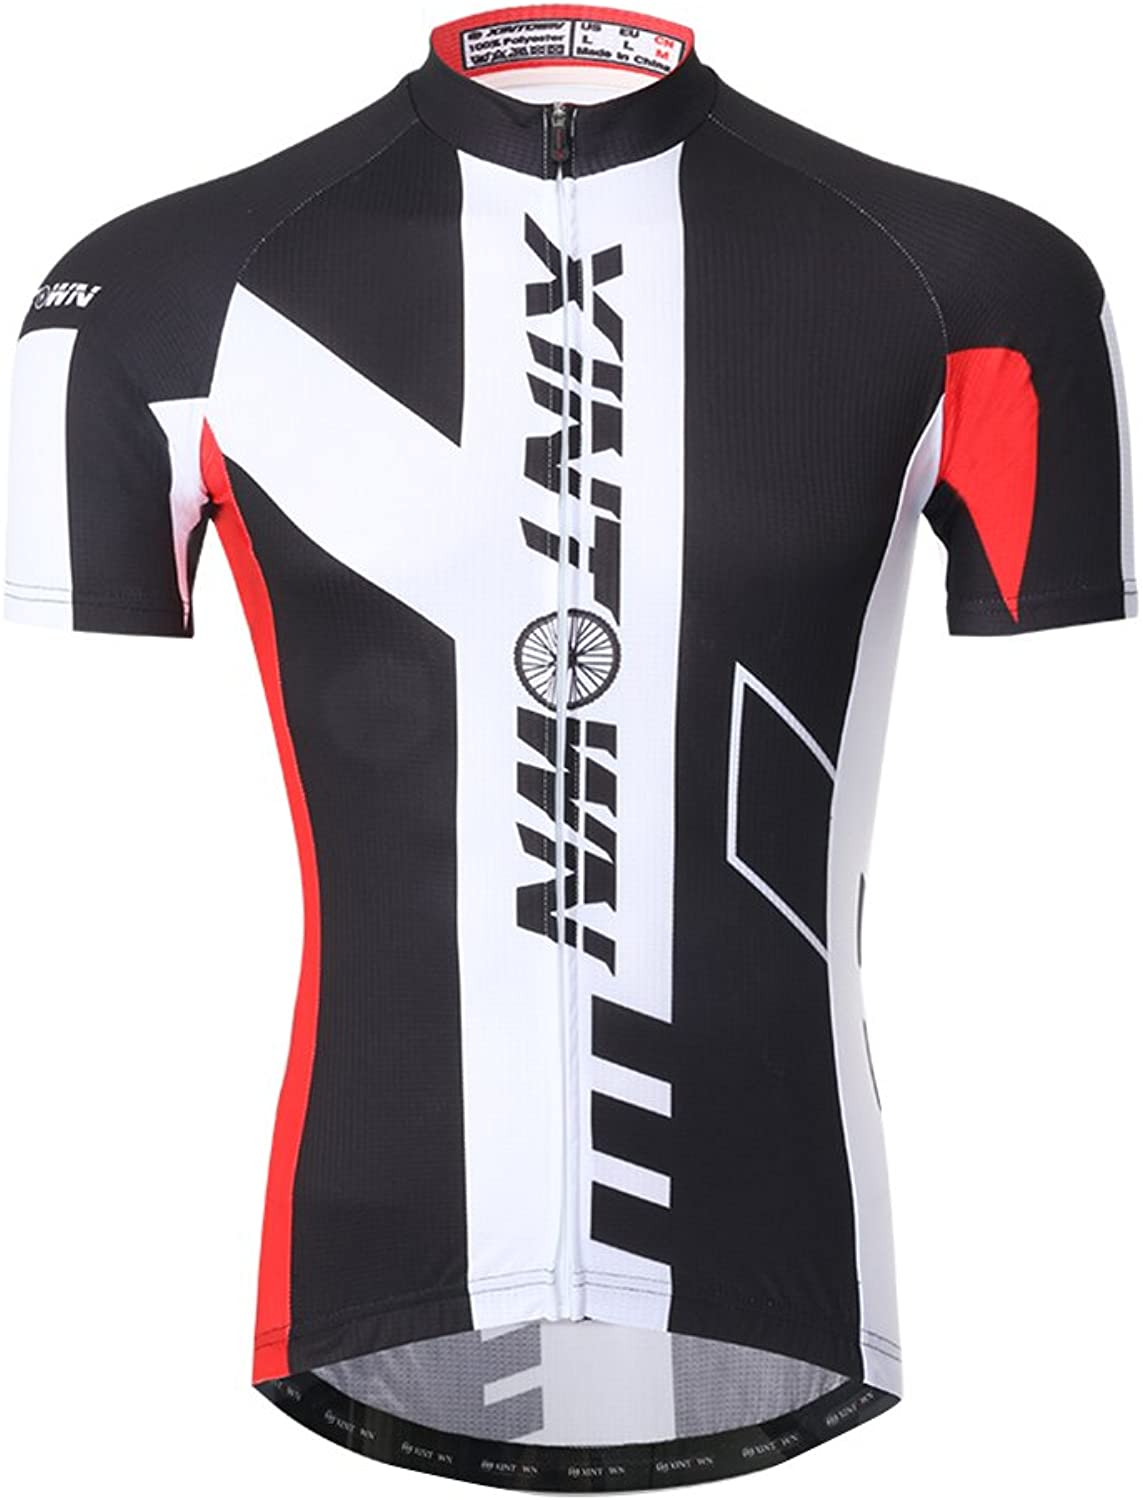 Nawing Cycling Jersey Men, Summer Indoor Sport Black Cycle Compression Shirt